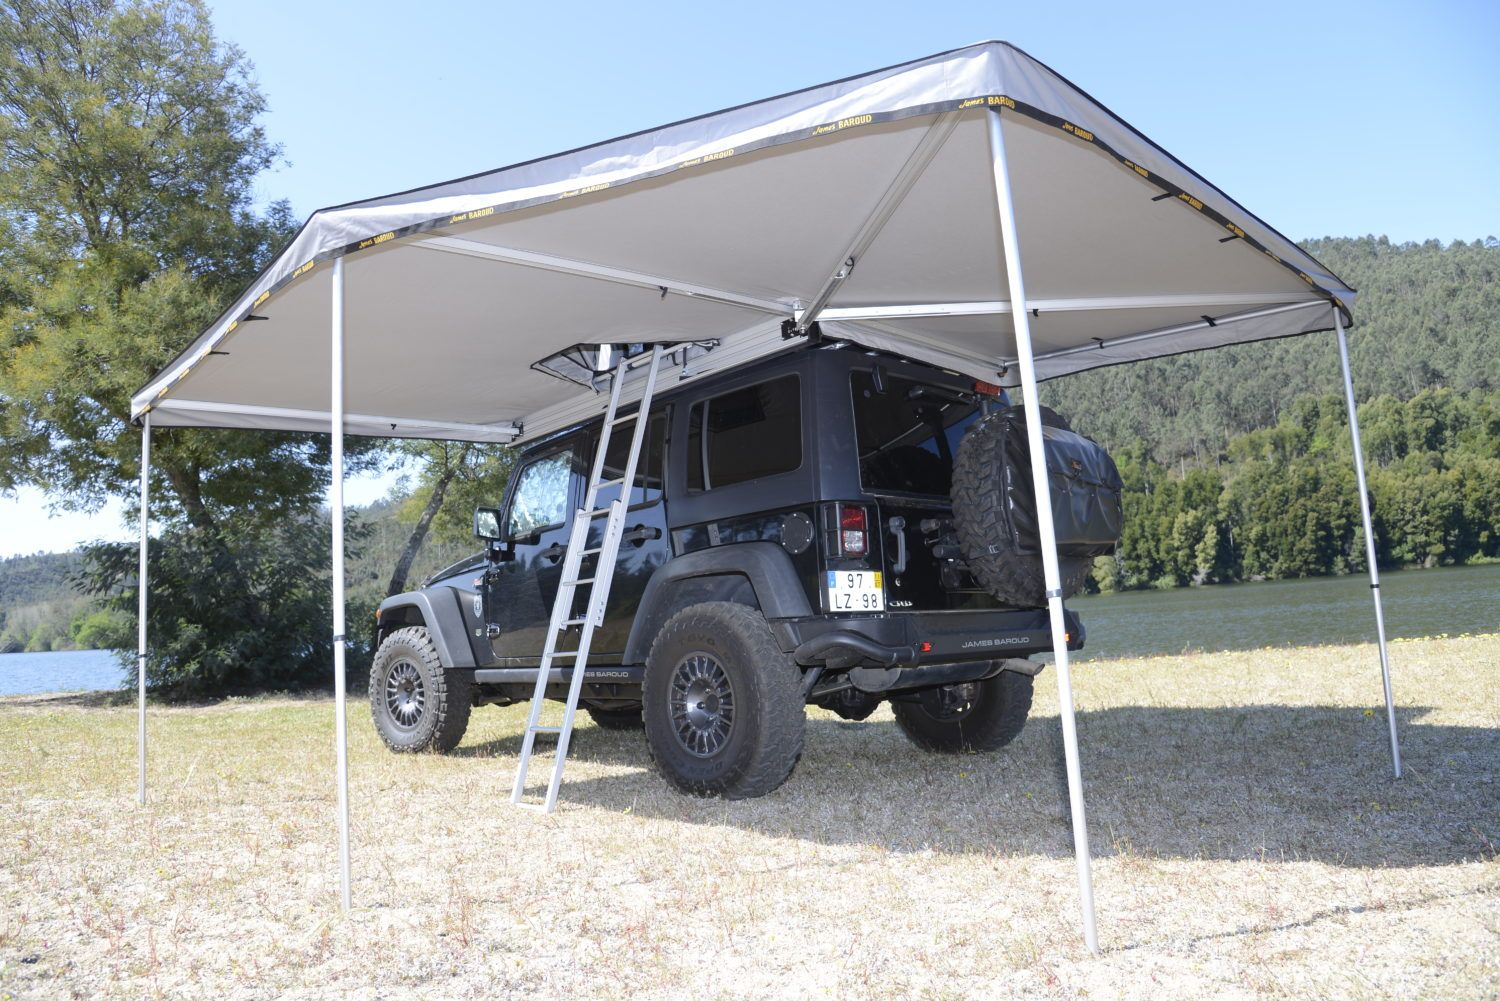 James Baroud Falcon 270 Awning Adventure Ready Awning Roof Tent Tent